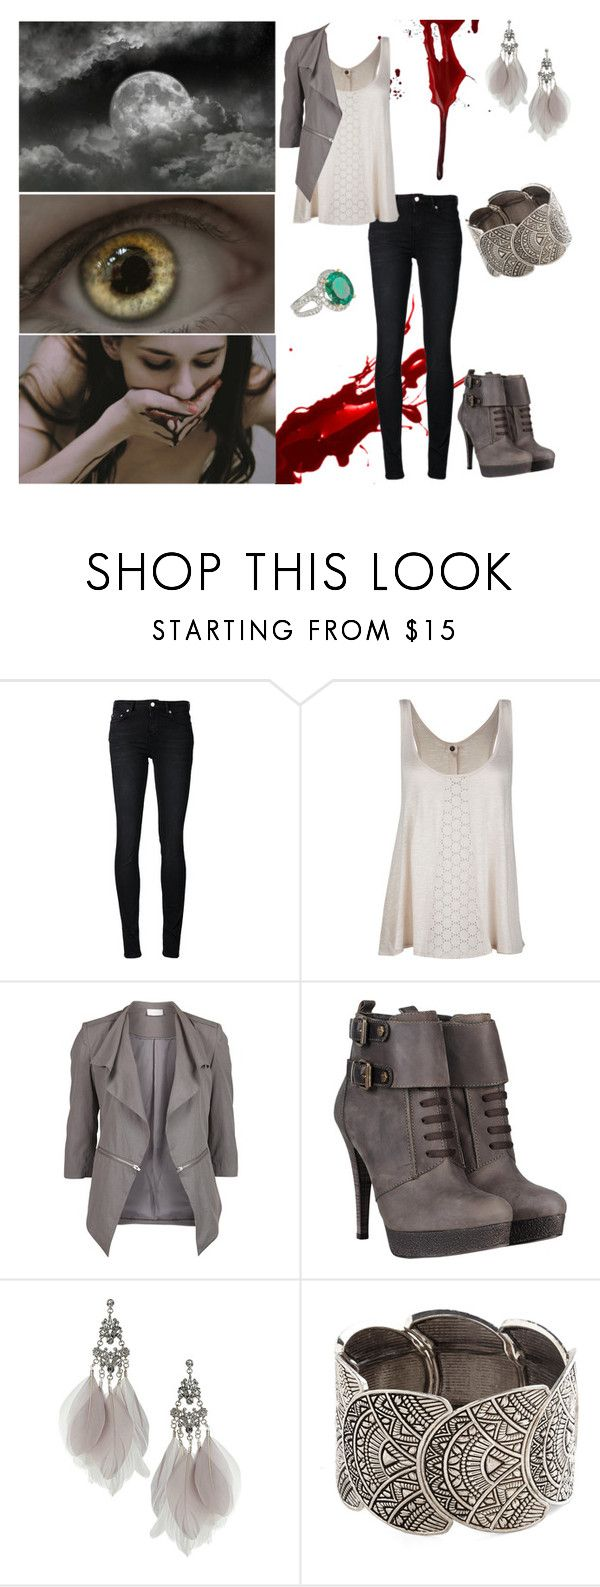 """""""the effect of the full moon"""" by kerstinxx ❤ liked on Polyvore featuring BLK DNM, Ten-Sixty Sherman, VILA, Miss Sixty and Miss Selfridge"""